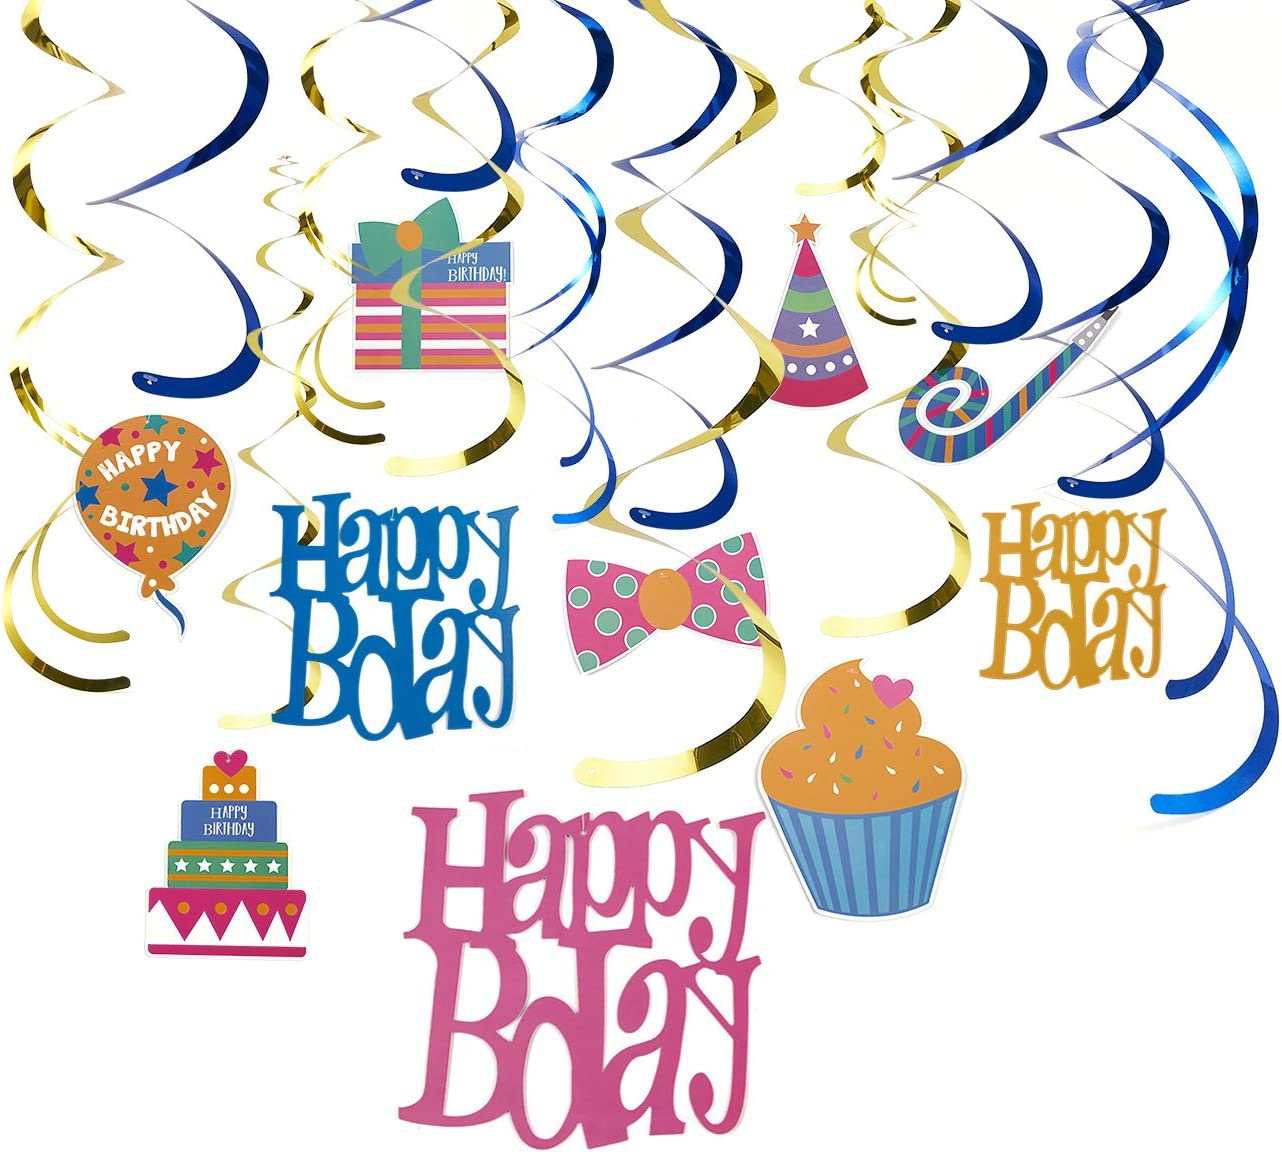 30-Count Swirl Decorations -Happy Bday Party Whirl Streamers - Happy Birthday Party Supplies, Hanging Decorations, Multiple Colors Designs, 35 to 38 inches in Length